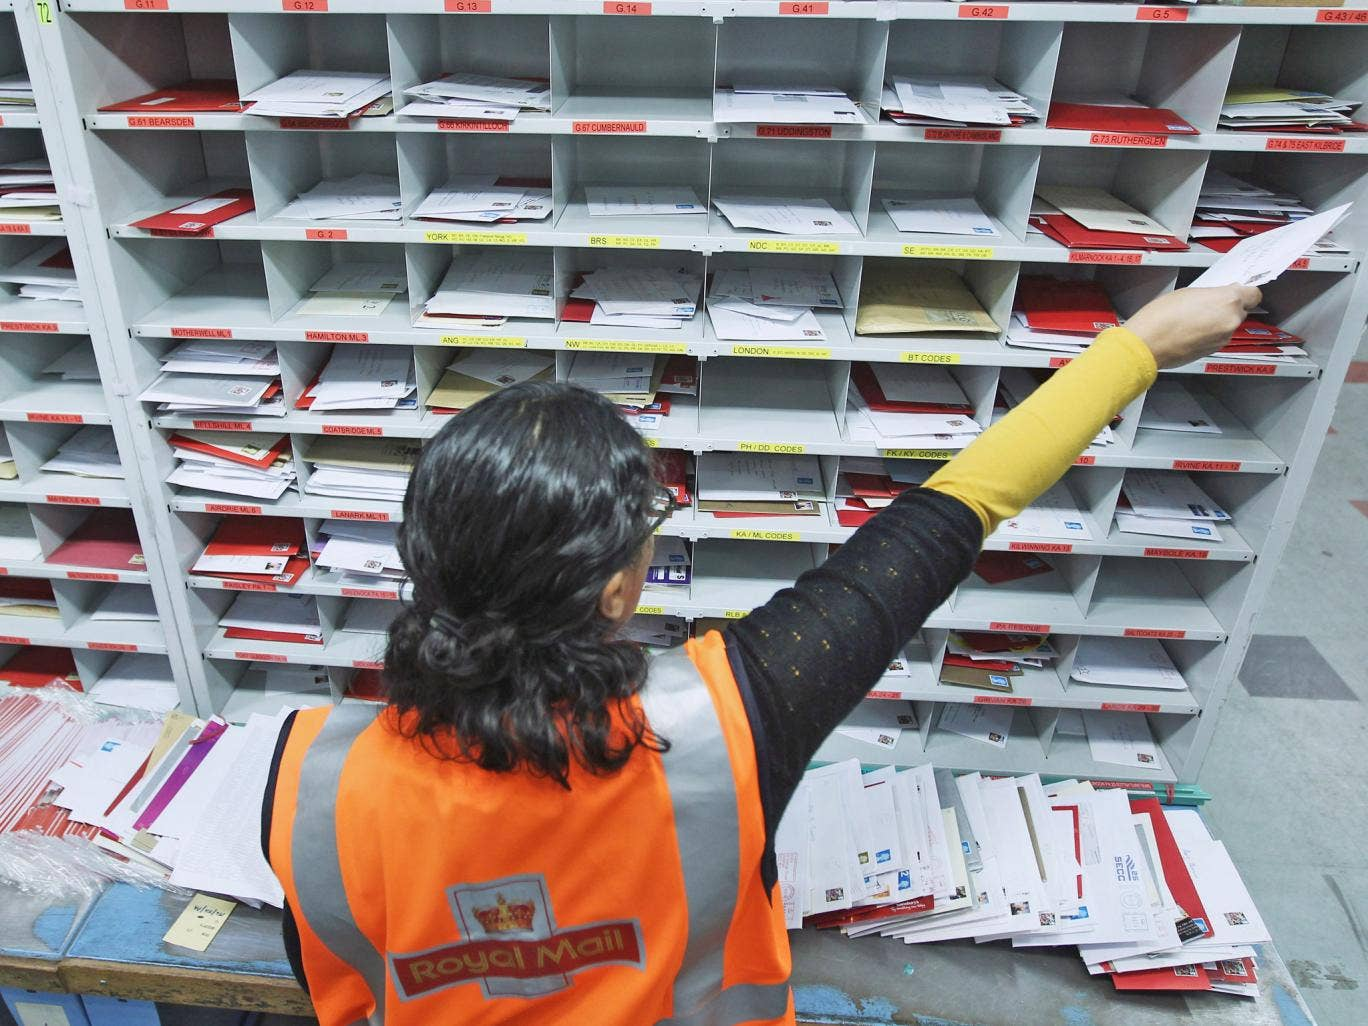 A Royal Mail worker handles mail at a sorting office